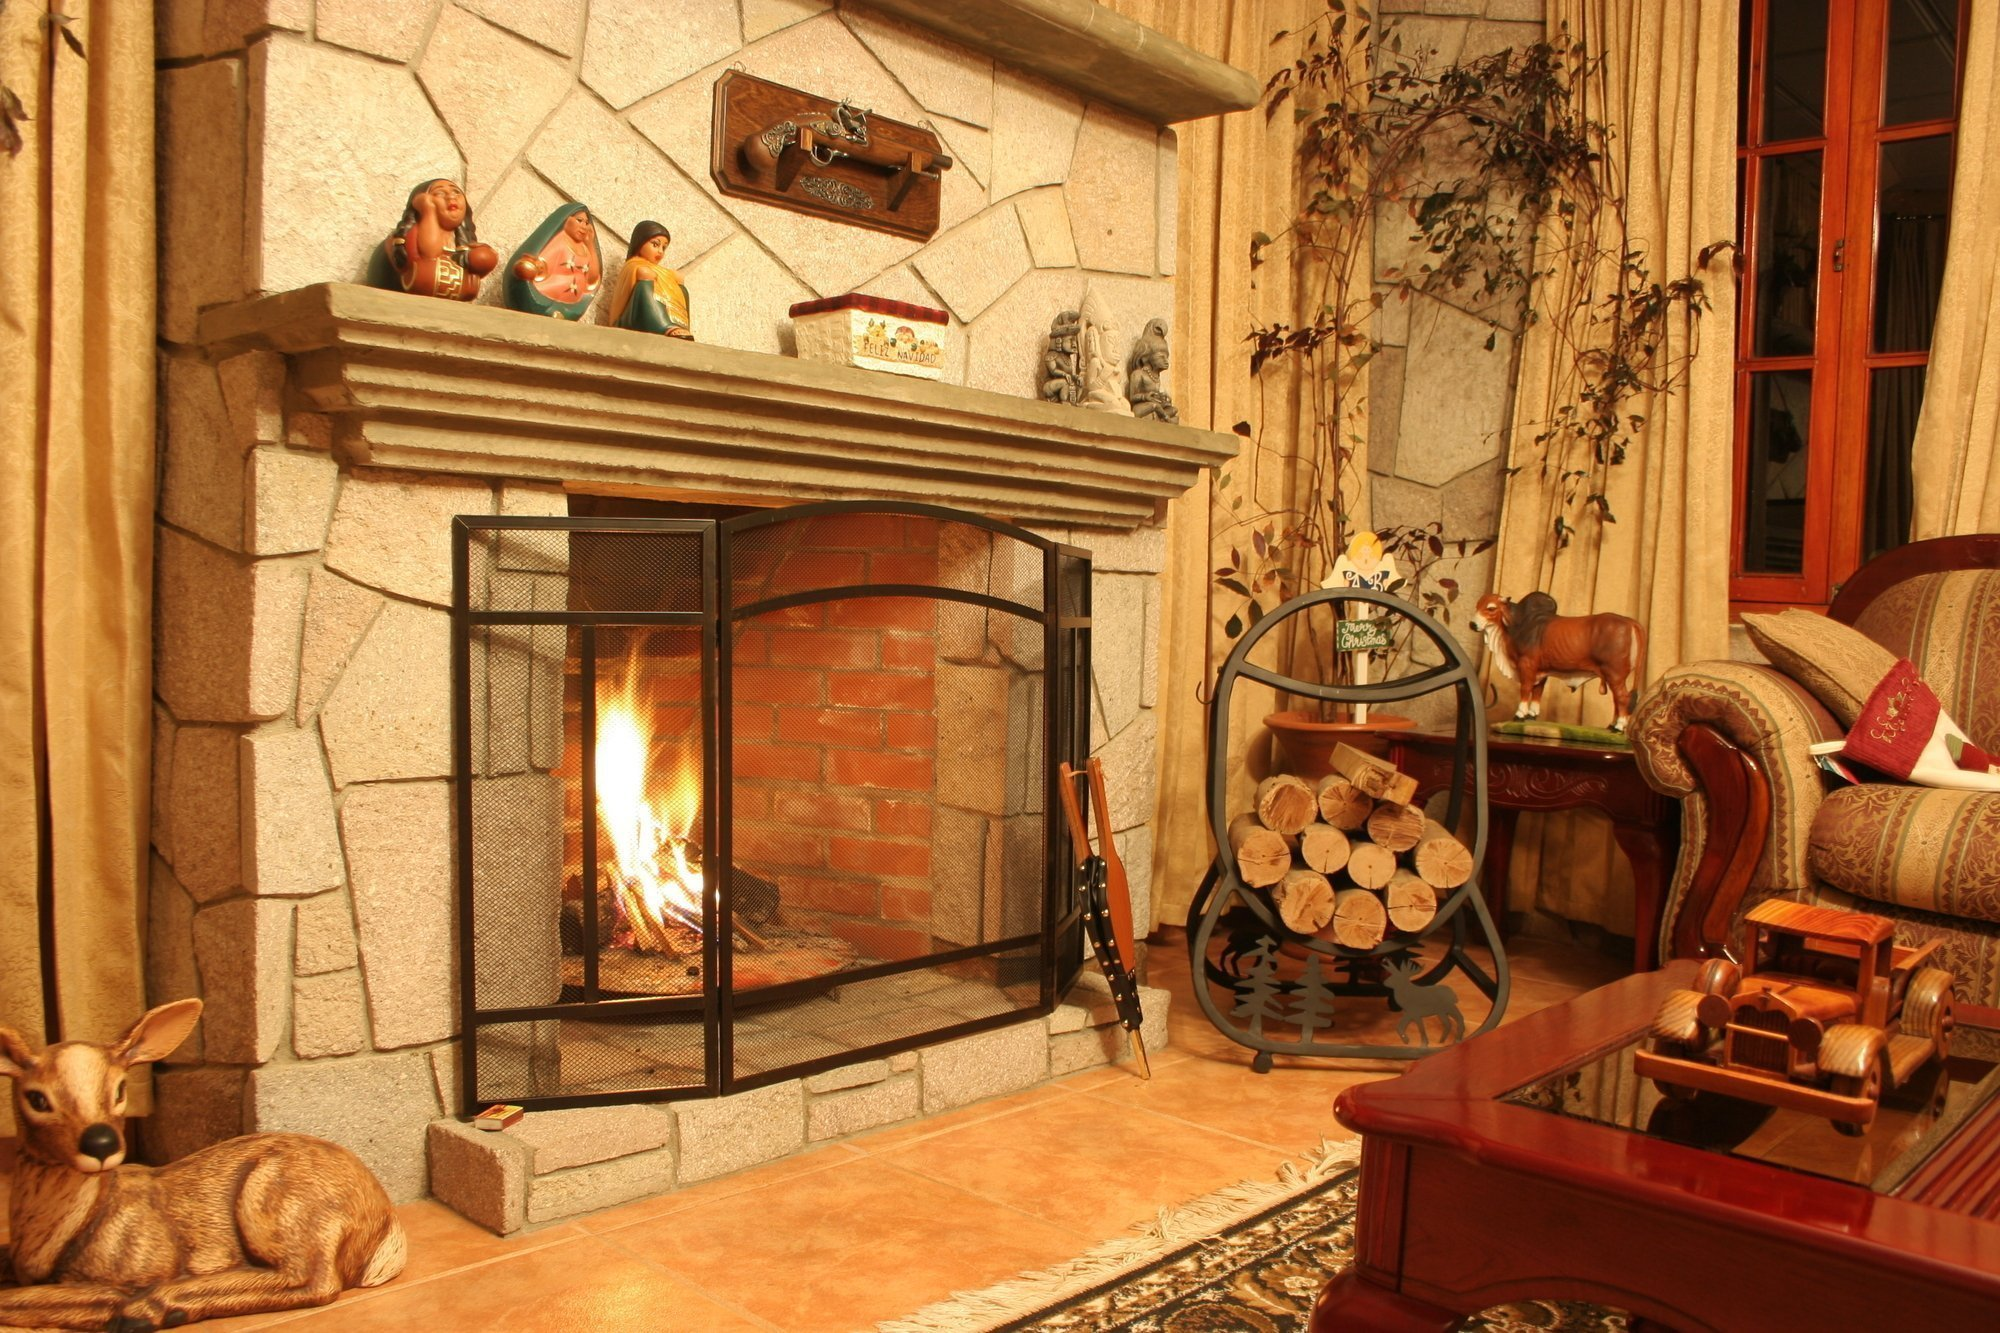 5 Luxurious Ways to Keep Your Home Warm